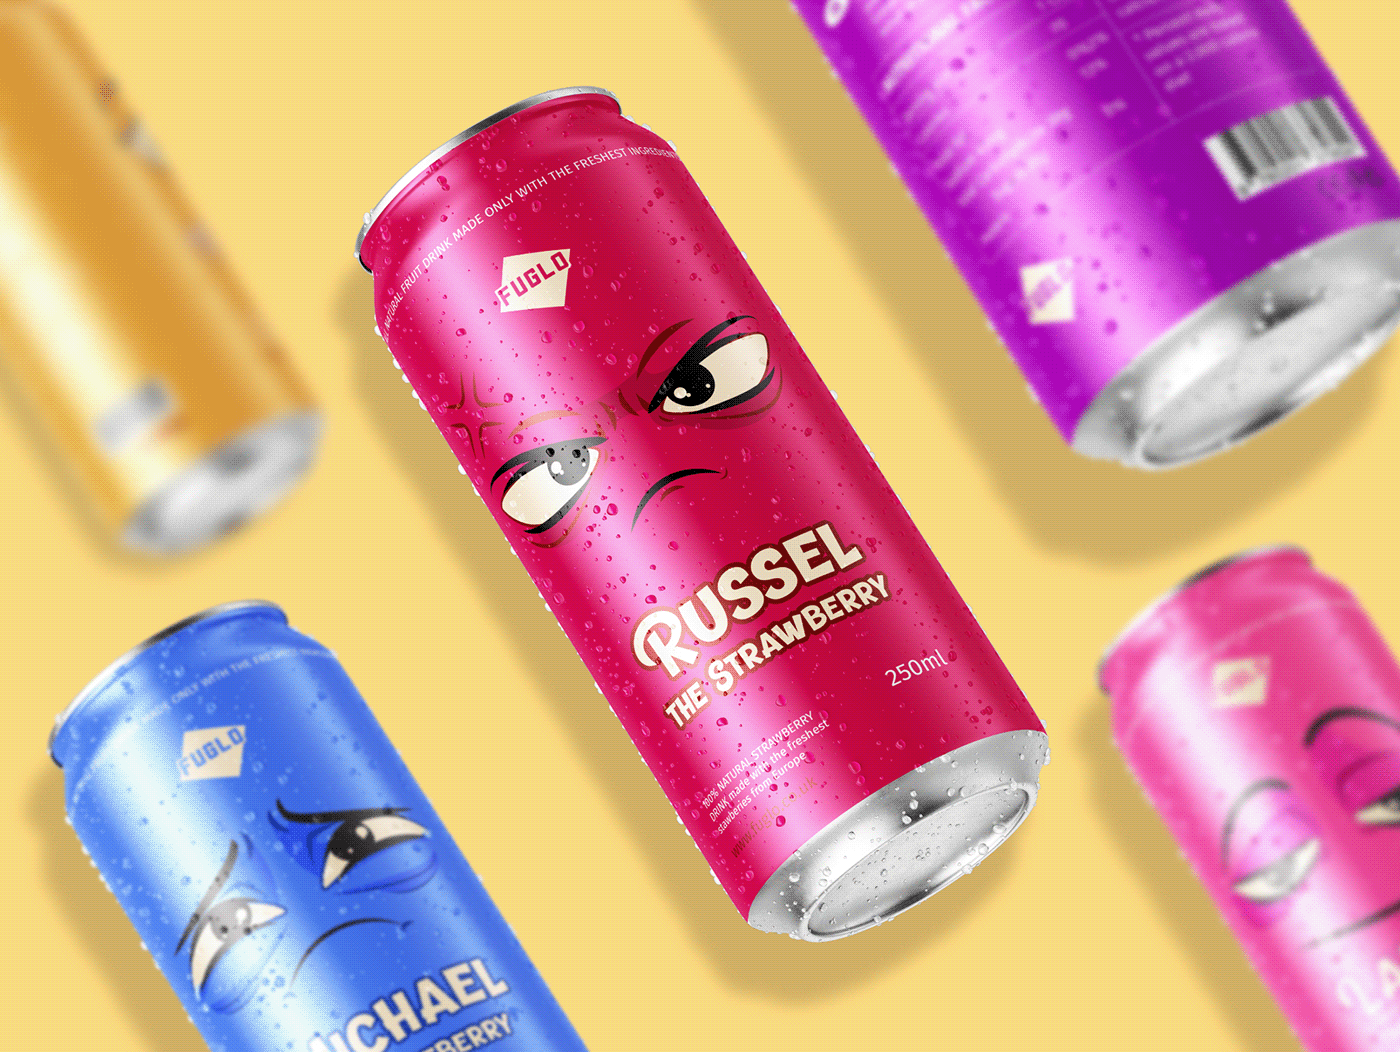 mockup of soda cans on a yellow background